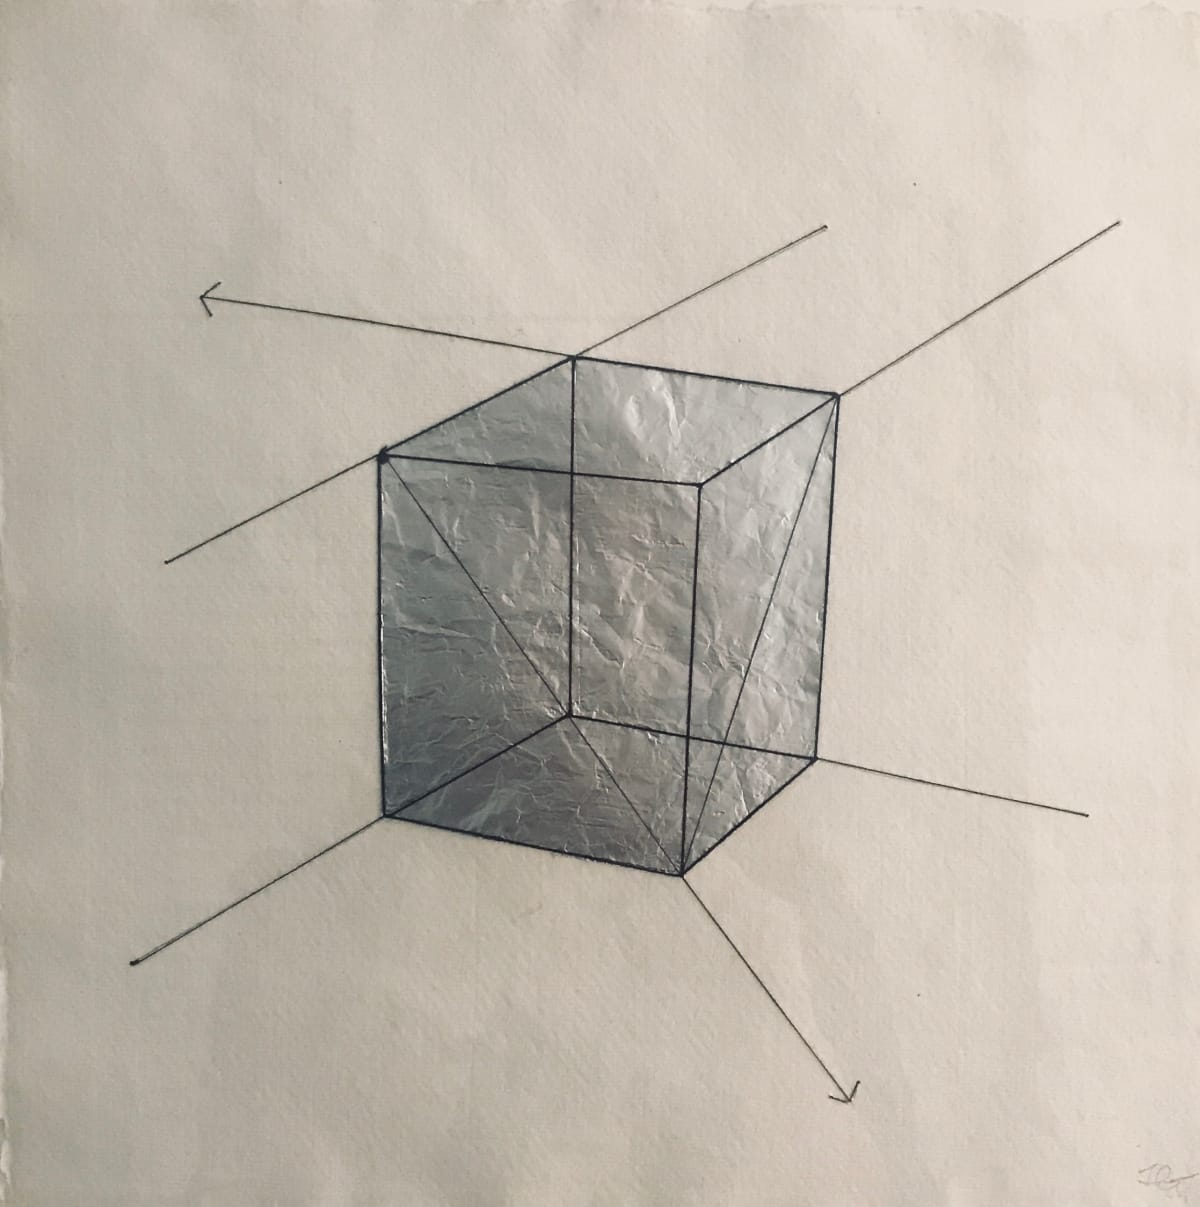 JANE GOODWIN Geometric drawing, 2019 thread and silver paper 38 x 37 cm 15 x 14 1/2 in Initialled